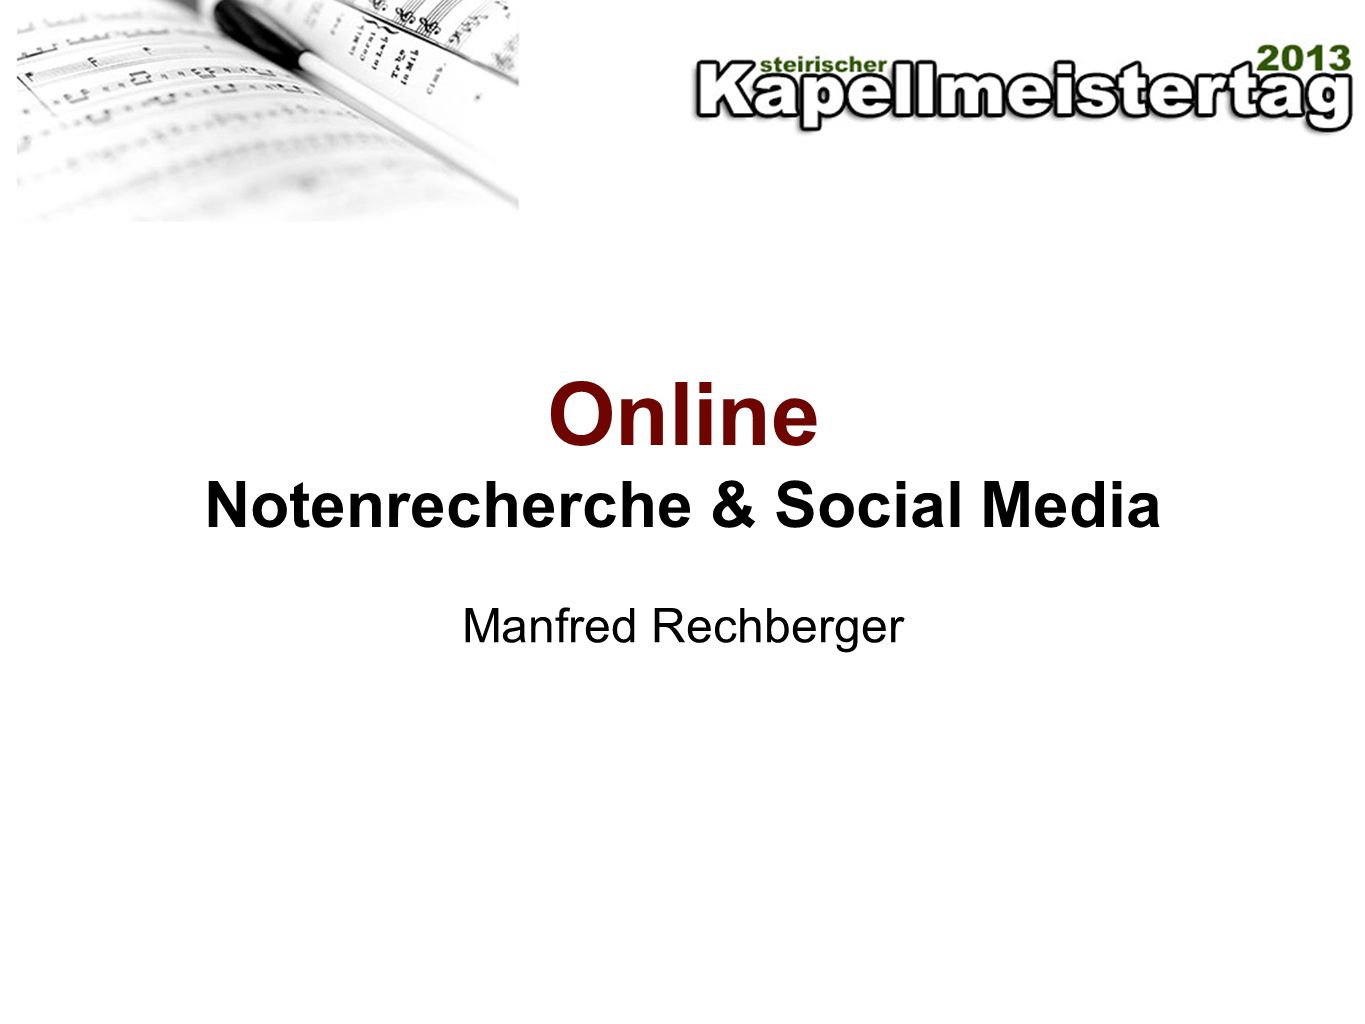 Online Notenrecherche & Social Media Manfred Rechberger